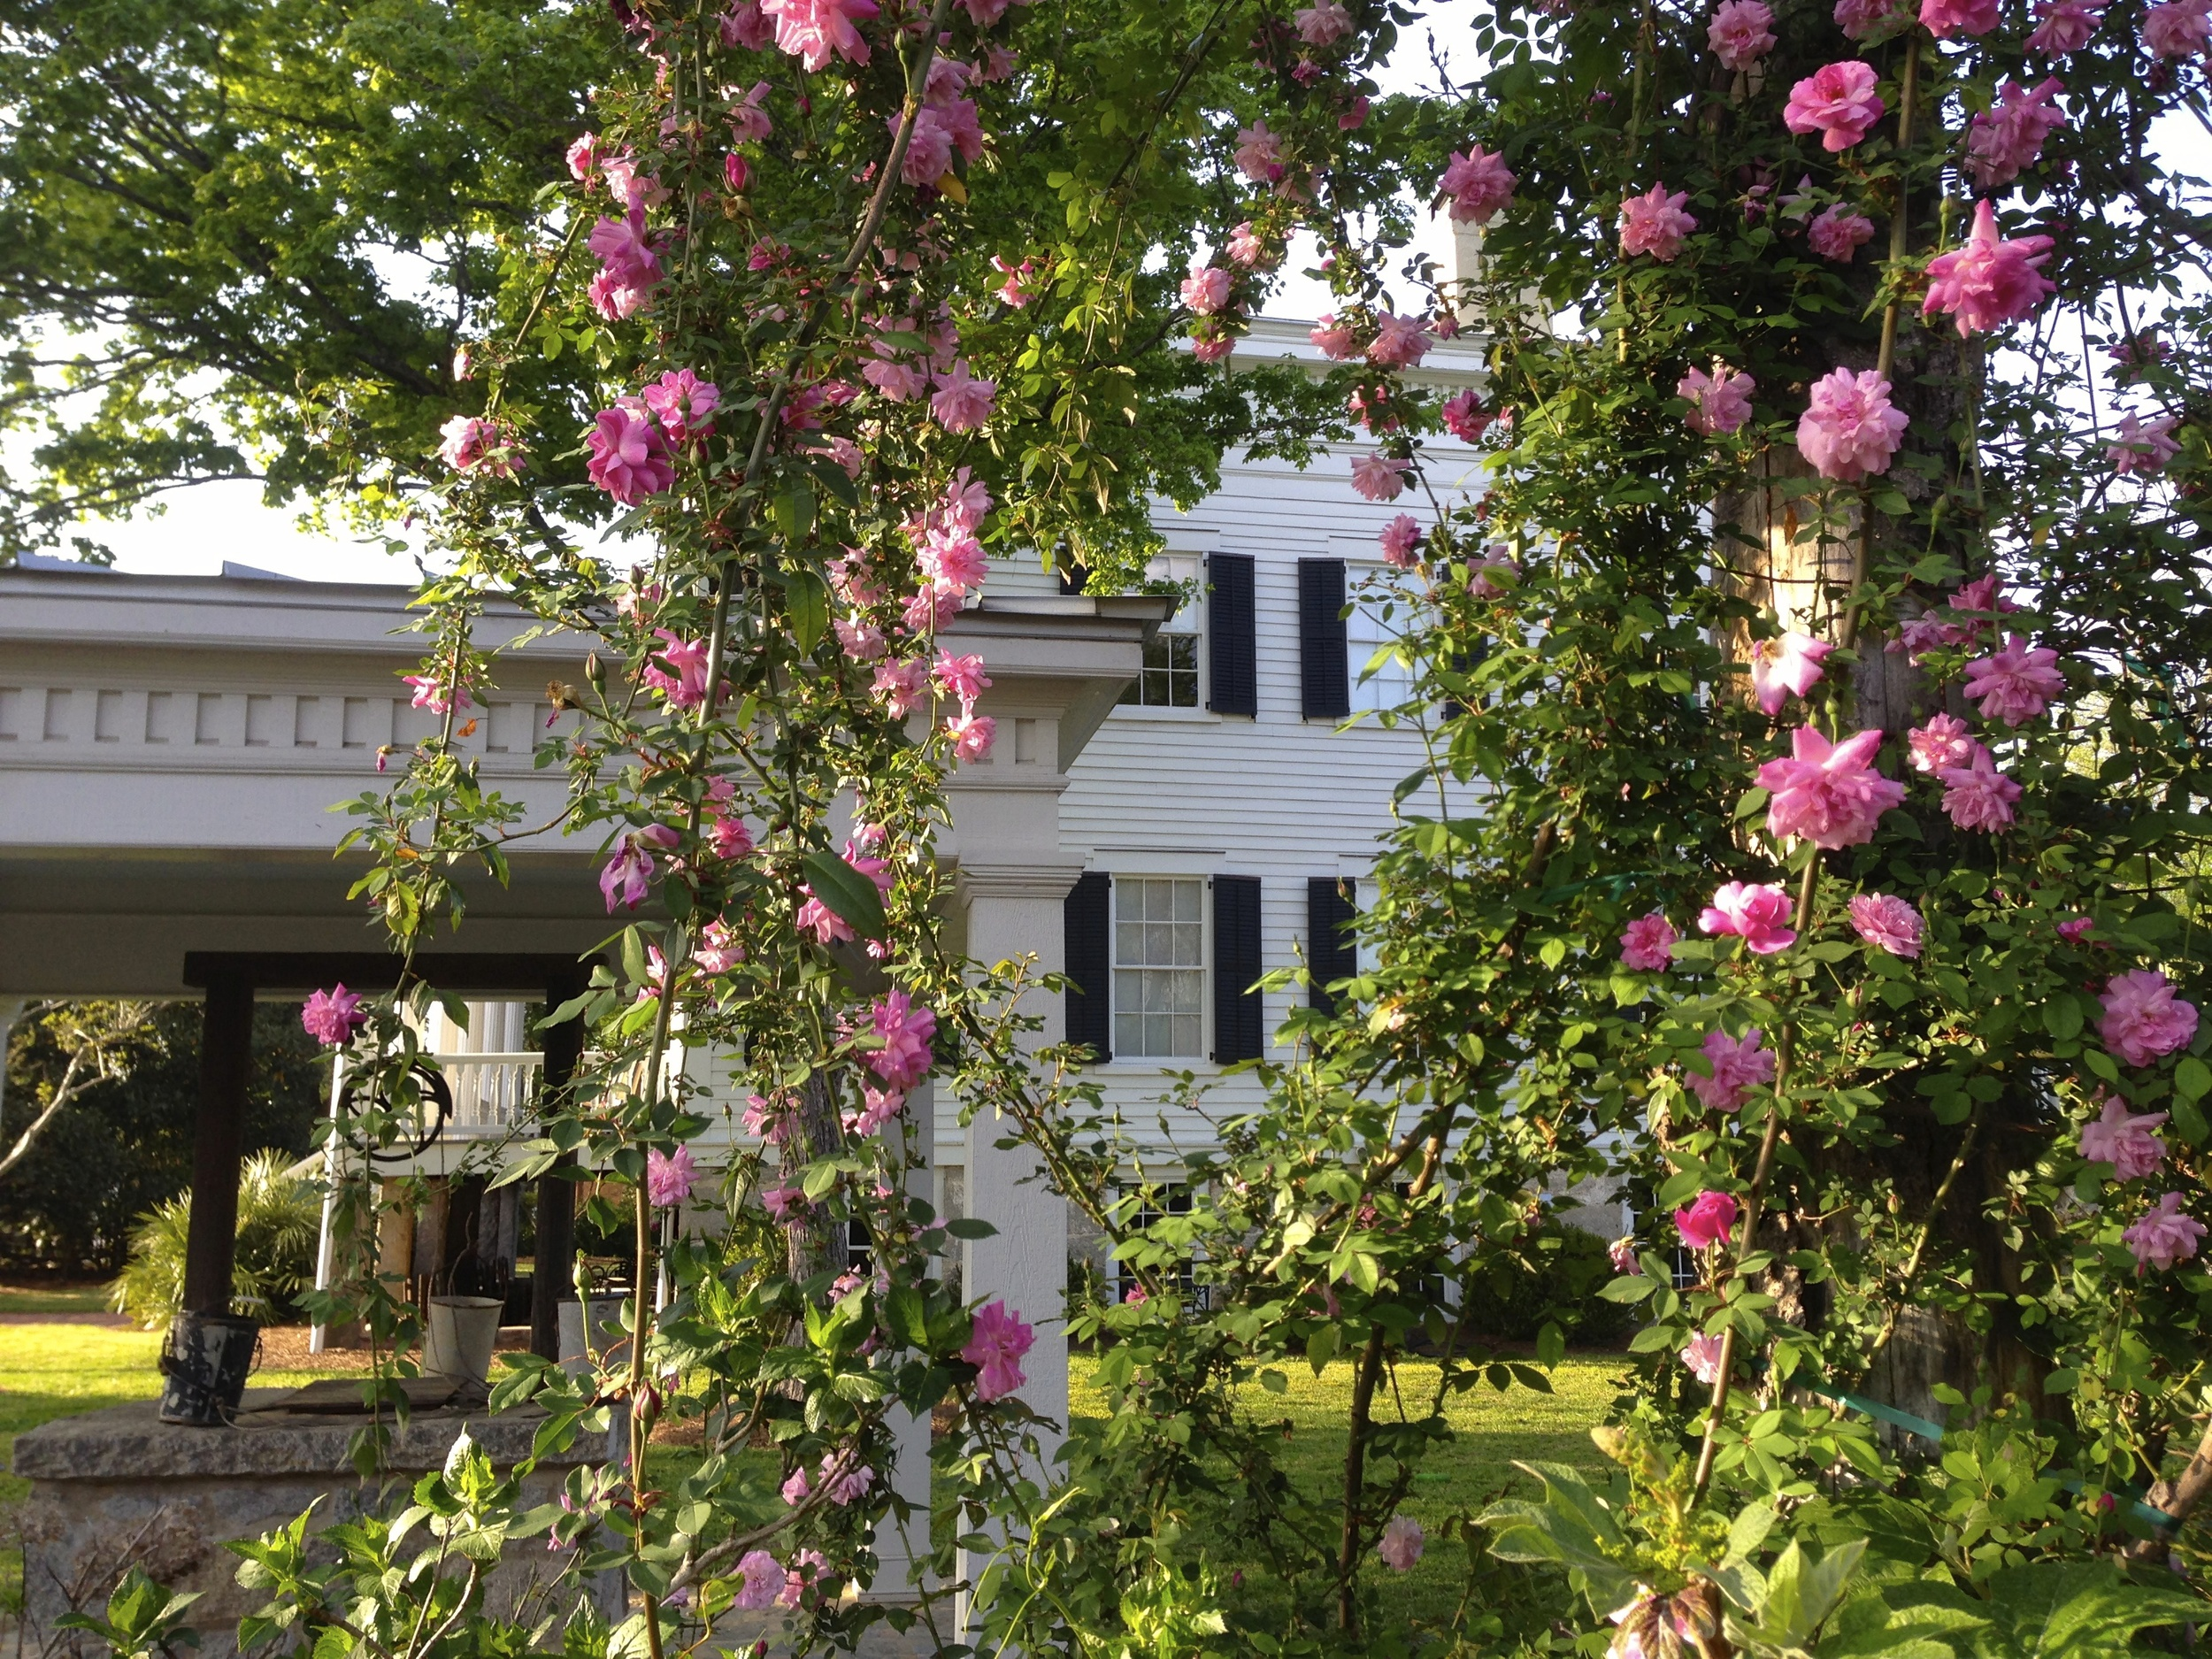 An antique rose, Old Blush, is a climber that is early to bloom and was the last rose blooming last fall.